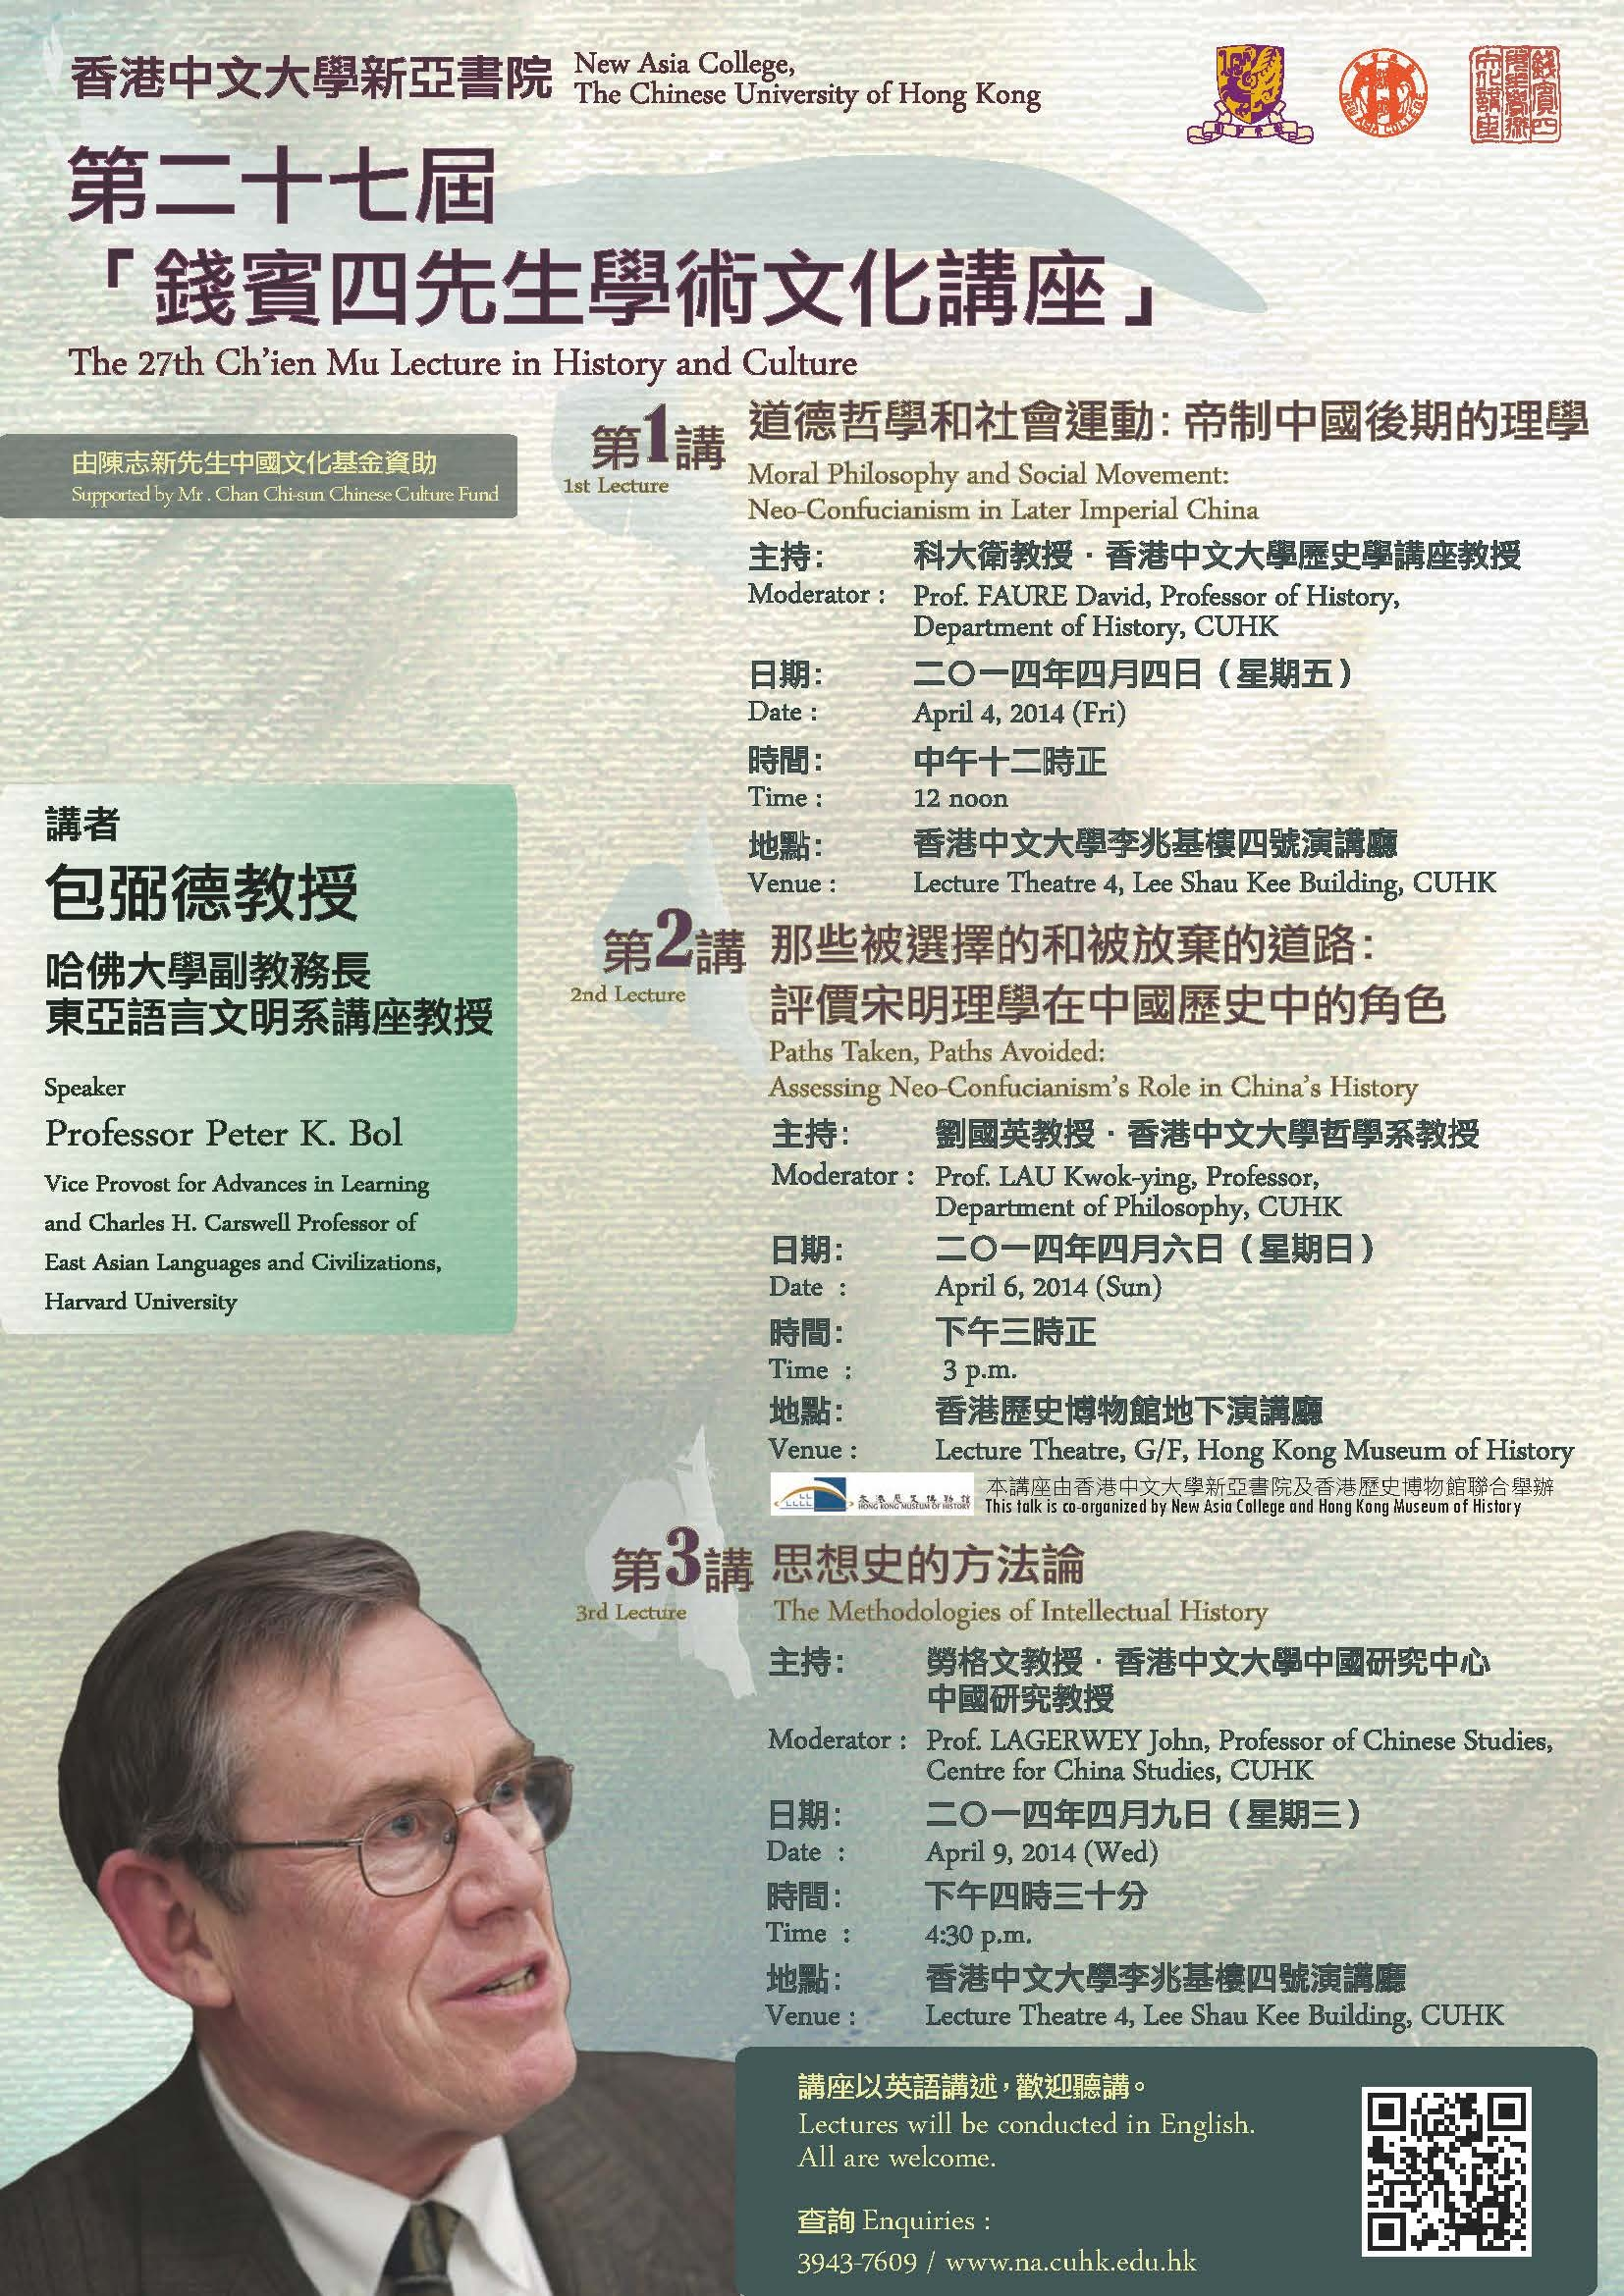 The 27th Ch'ien Mu Lecture in History and Culture